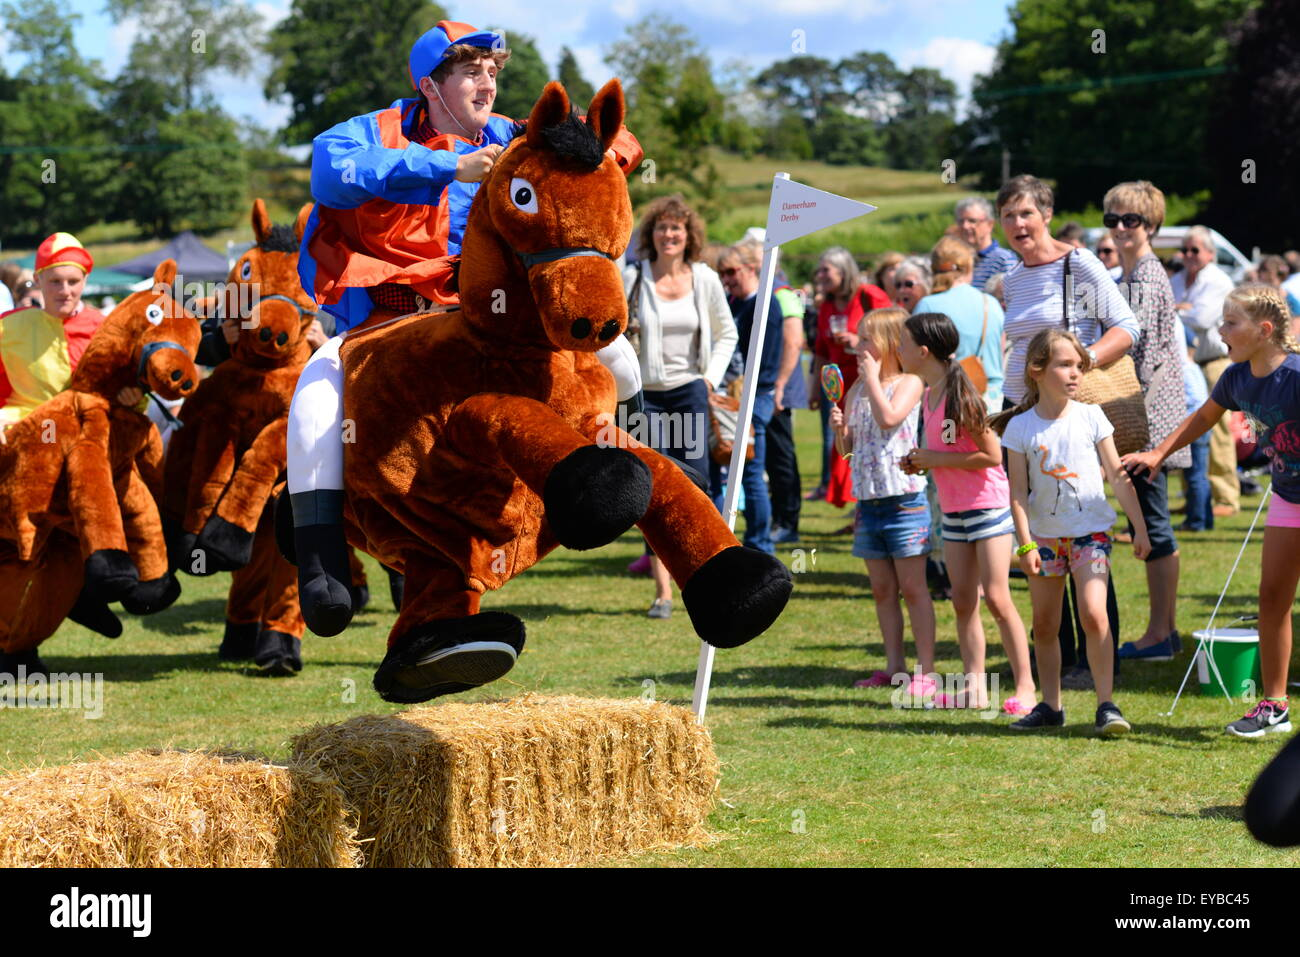 Hampshire, UK. 25th July, 2015. A jockey and his mount takes a jump in a Damerham Derby 'horse' race at - Stock Image